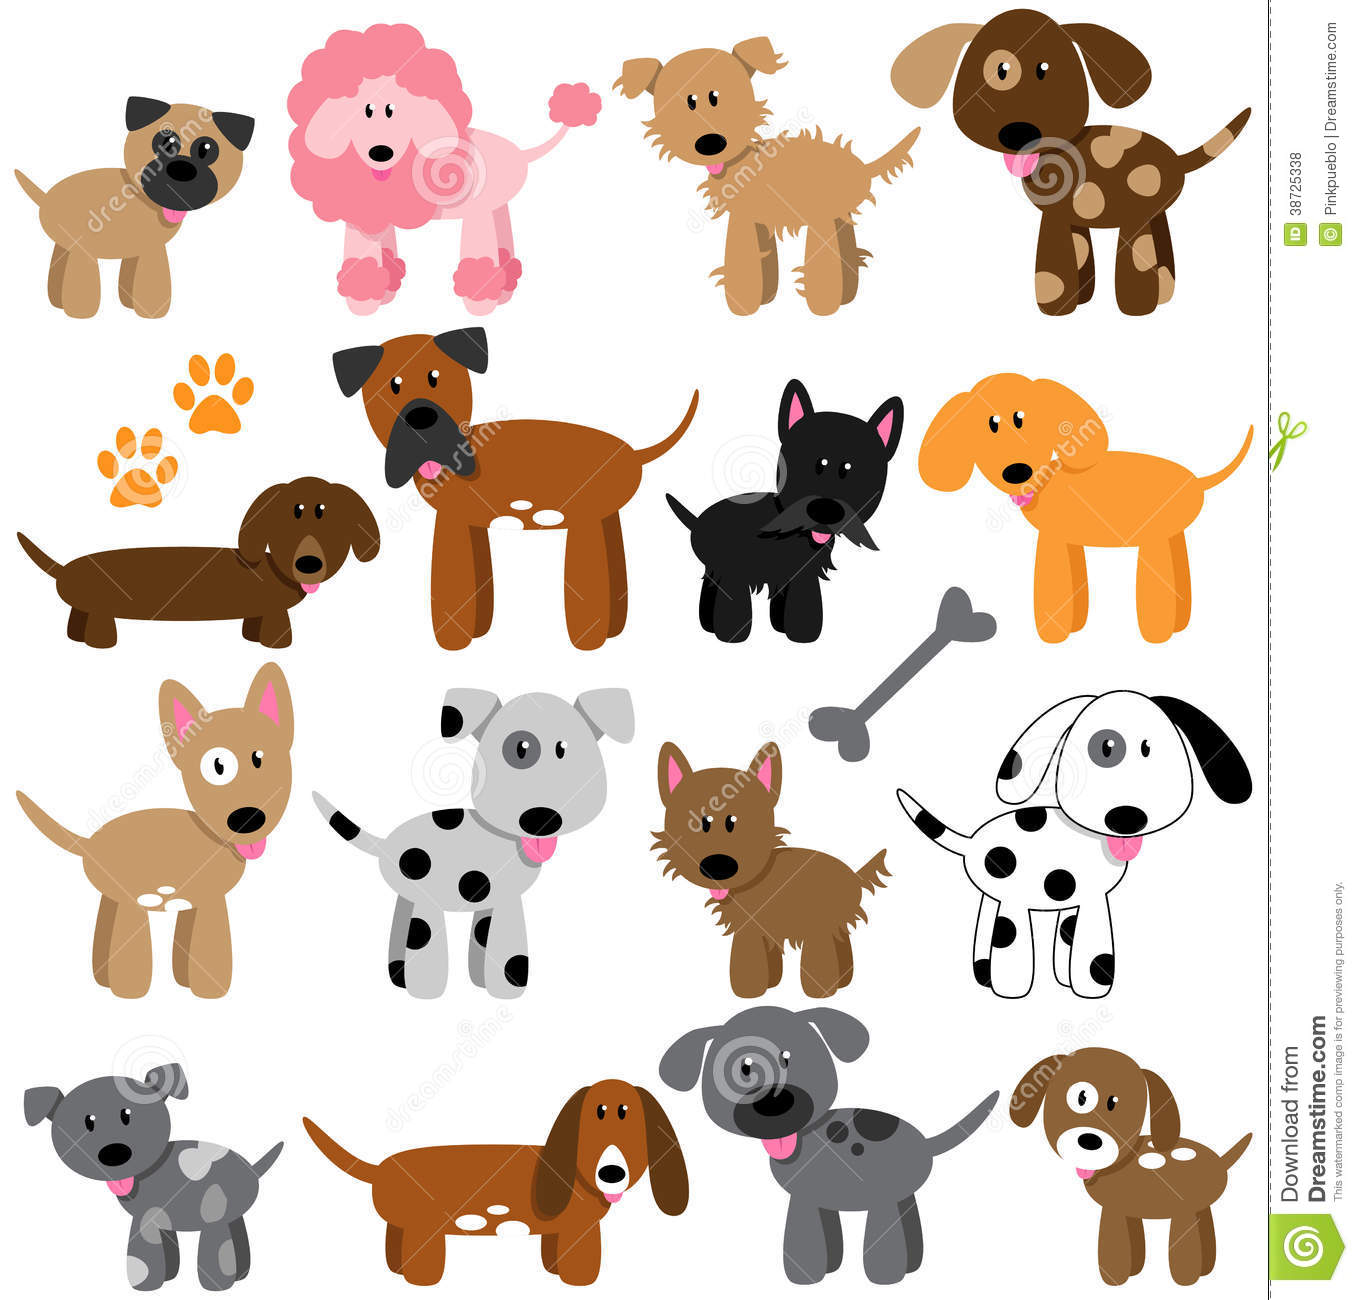 Small German Shorthaired Pointer Wallpaper besides American Staffordshire Terrier Pencil Print additionally Scottish Terrier Clip Art moreover Jojo Siwa Coloring Pages Pencil Drawing likewise Chihuahua Coloring Book For All Ages. on scottish terrier drawings